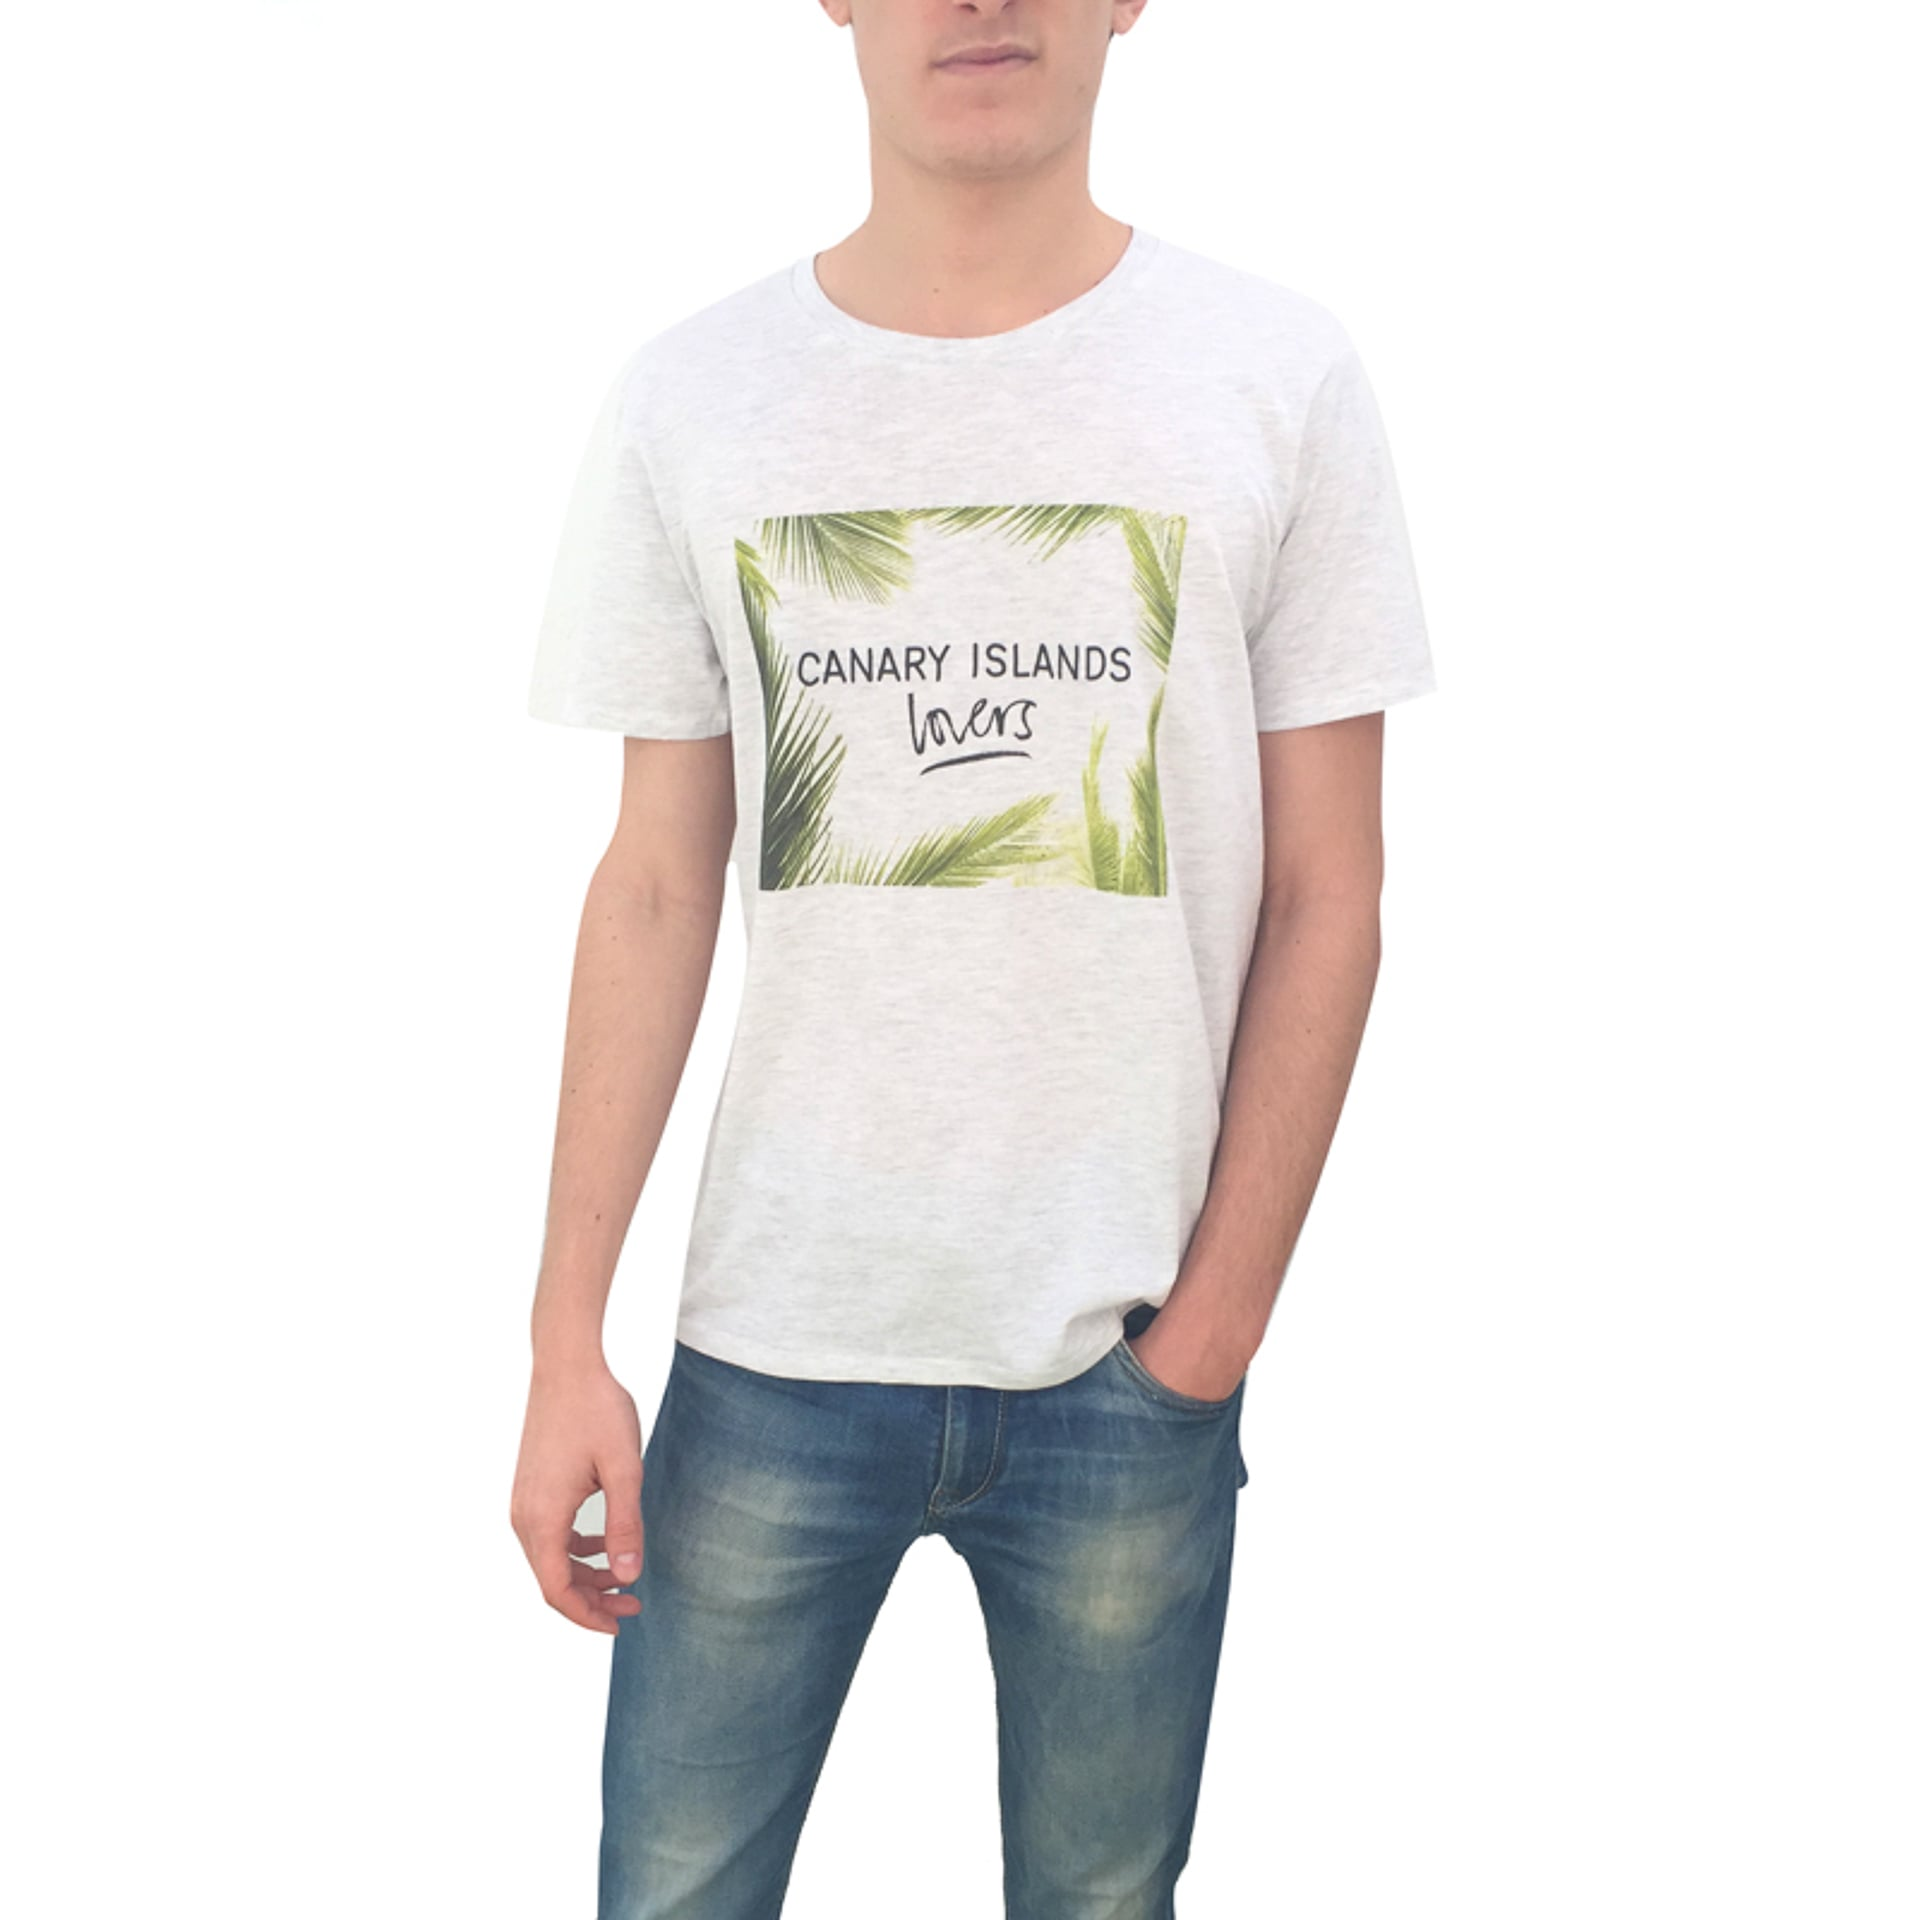 Canary_Islands_lovers-man-model-tshirt